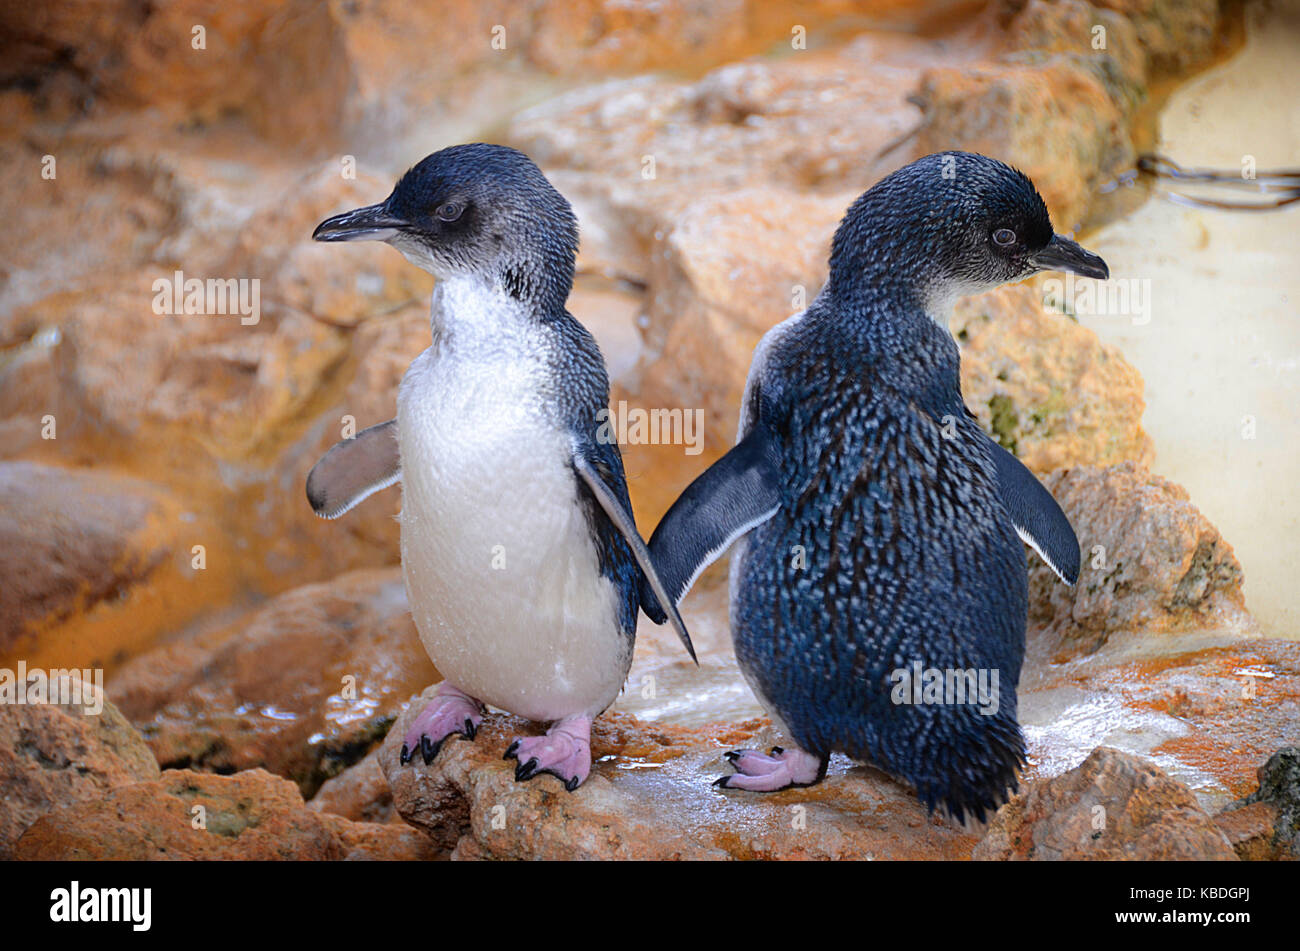 Little penguin (Eudyptula minor) pair on shore. Little penguins are sociable and spend much of their time out of - Stock Image